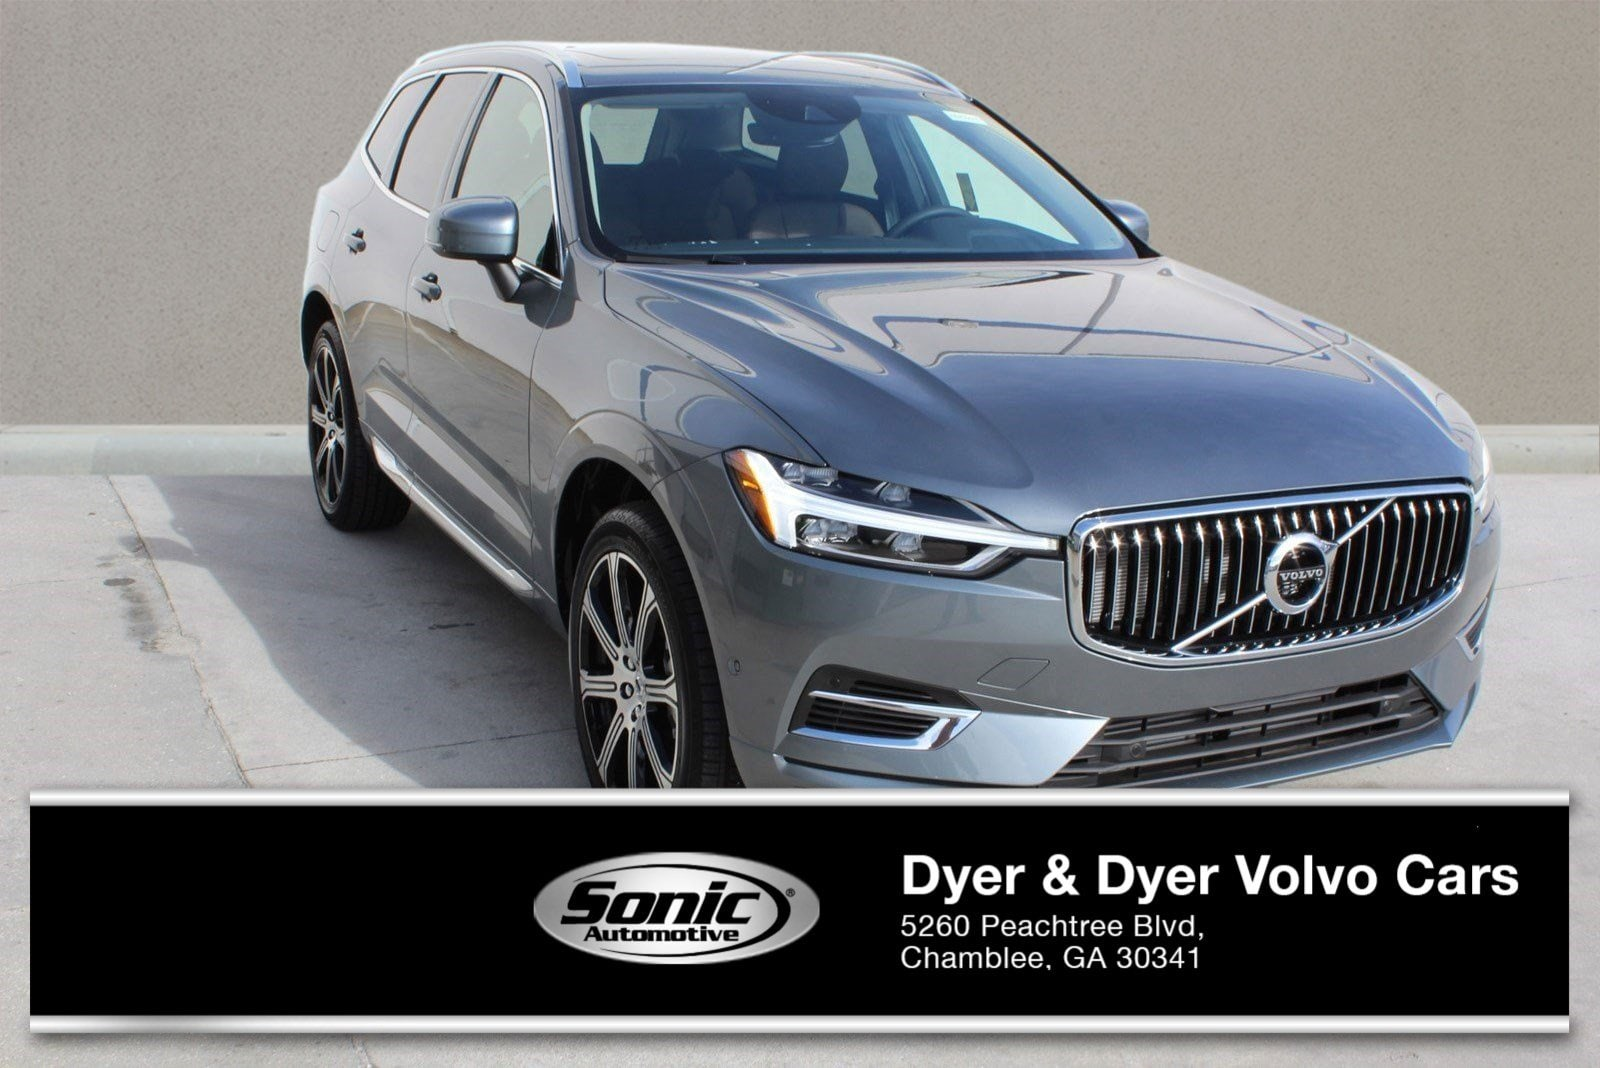 2019 Volvo Xc60 Hybrid For Sale In Chamblee Ga Dyer